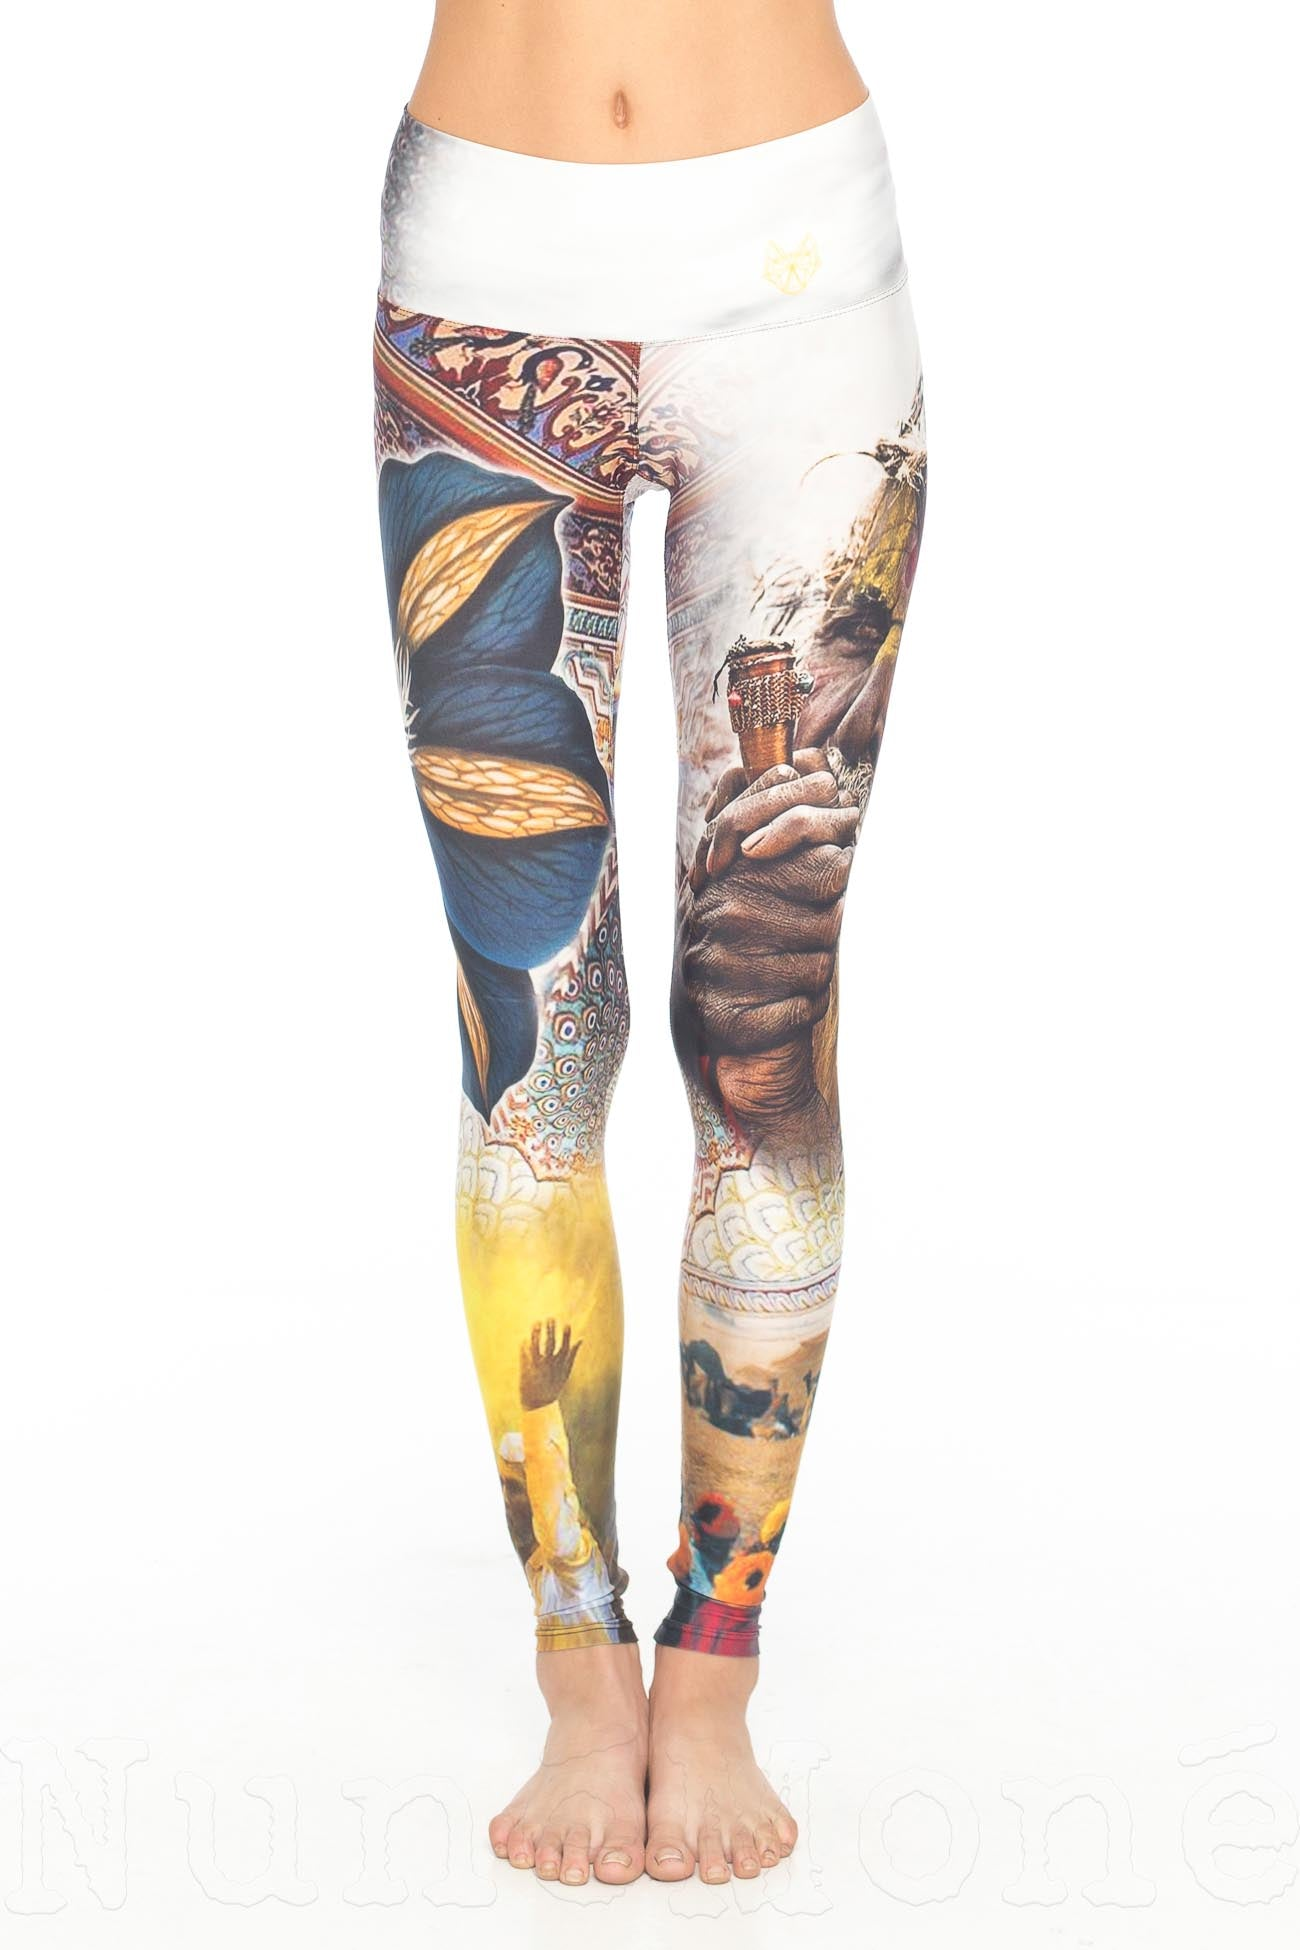 ushas-leggings-image